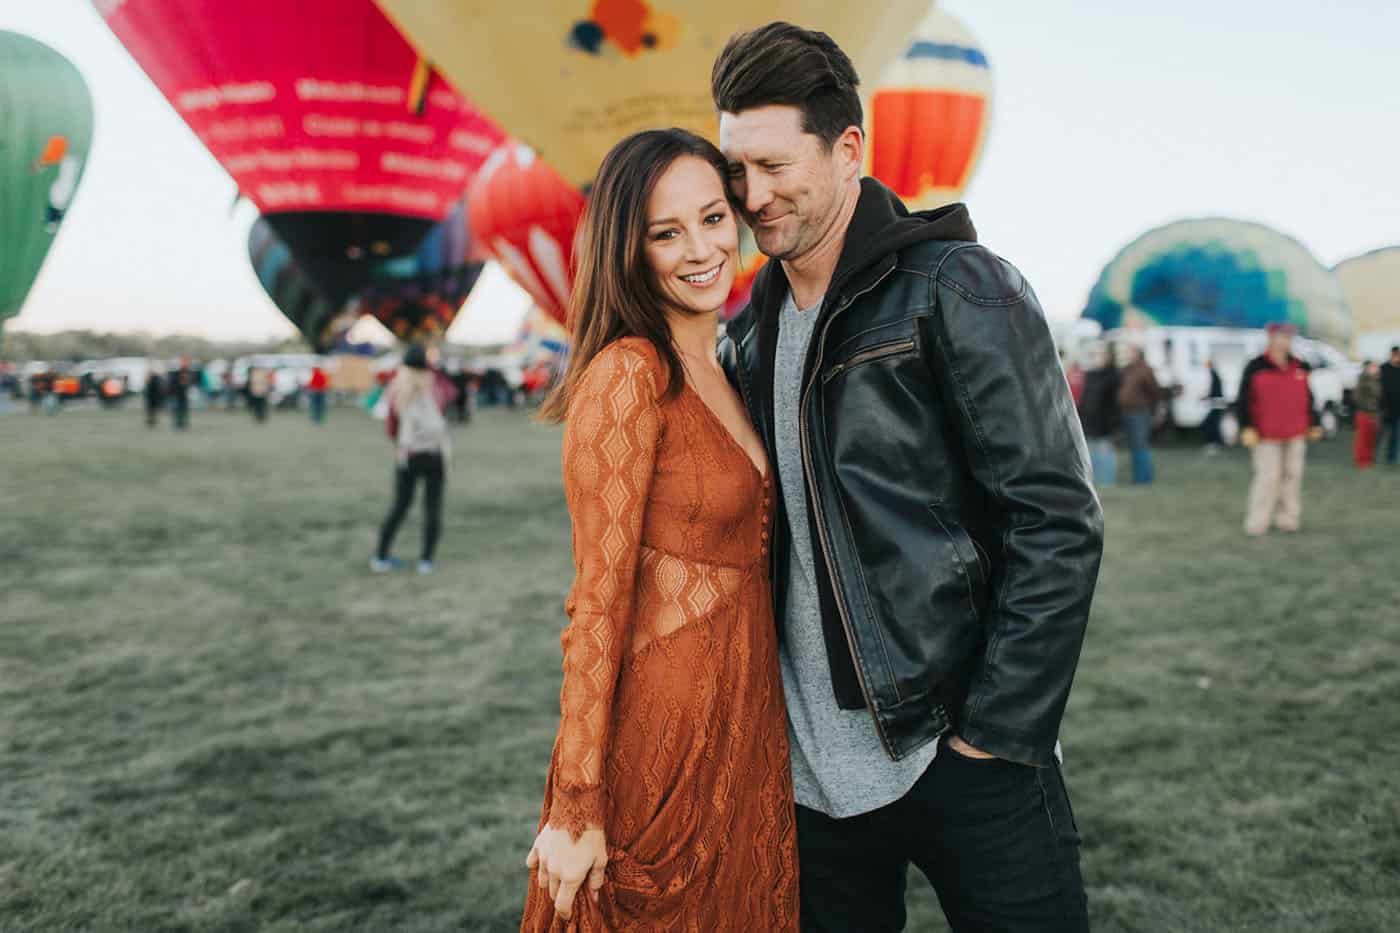 Memorable Photo Locations - Free People styled couple in love at a hot air balloon festival